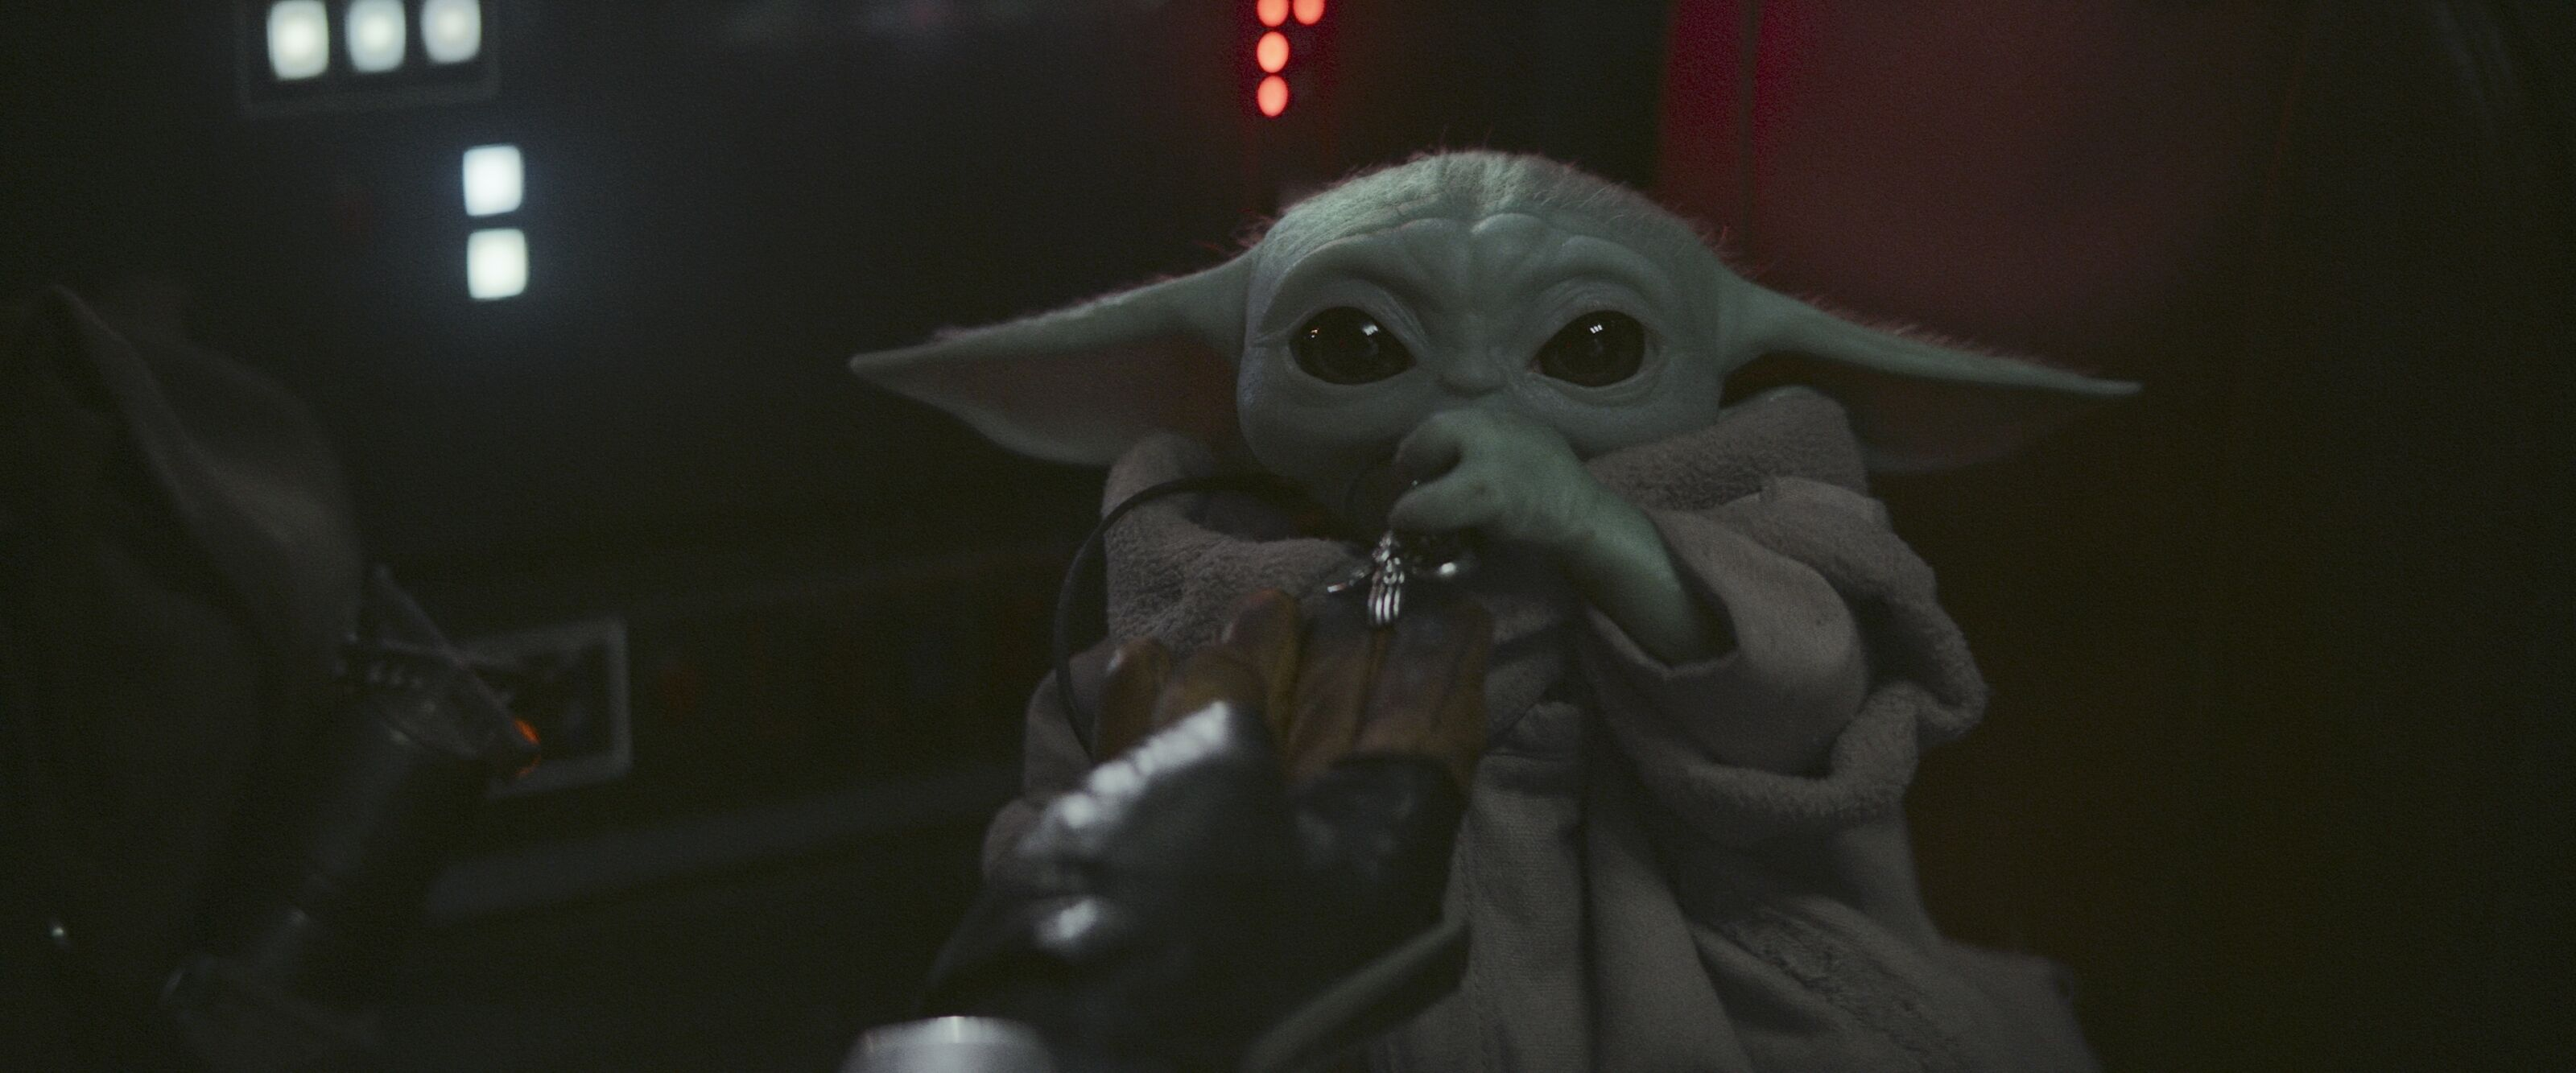 Sorry, Baby Jabba: Baby Yoda is the only baby the Star Wars universe needs